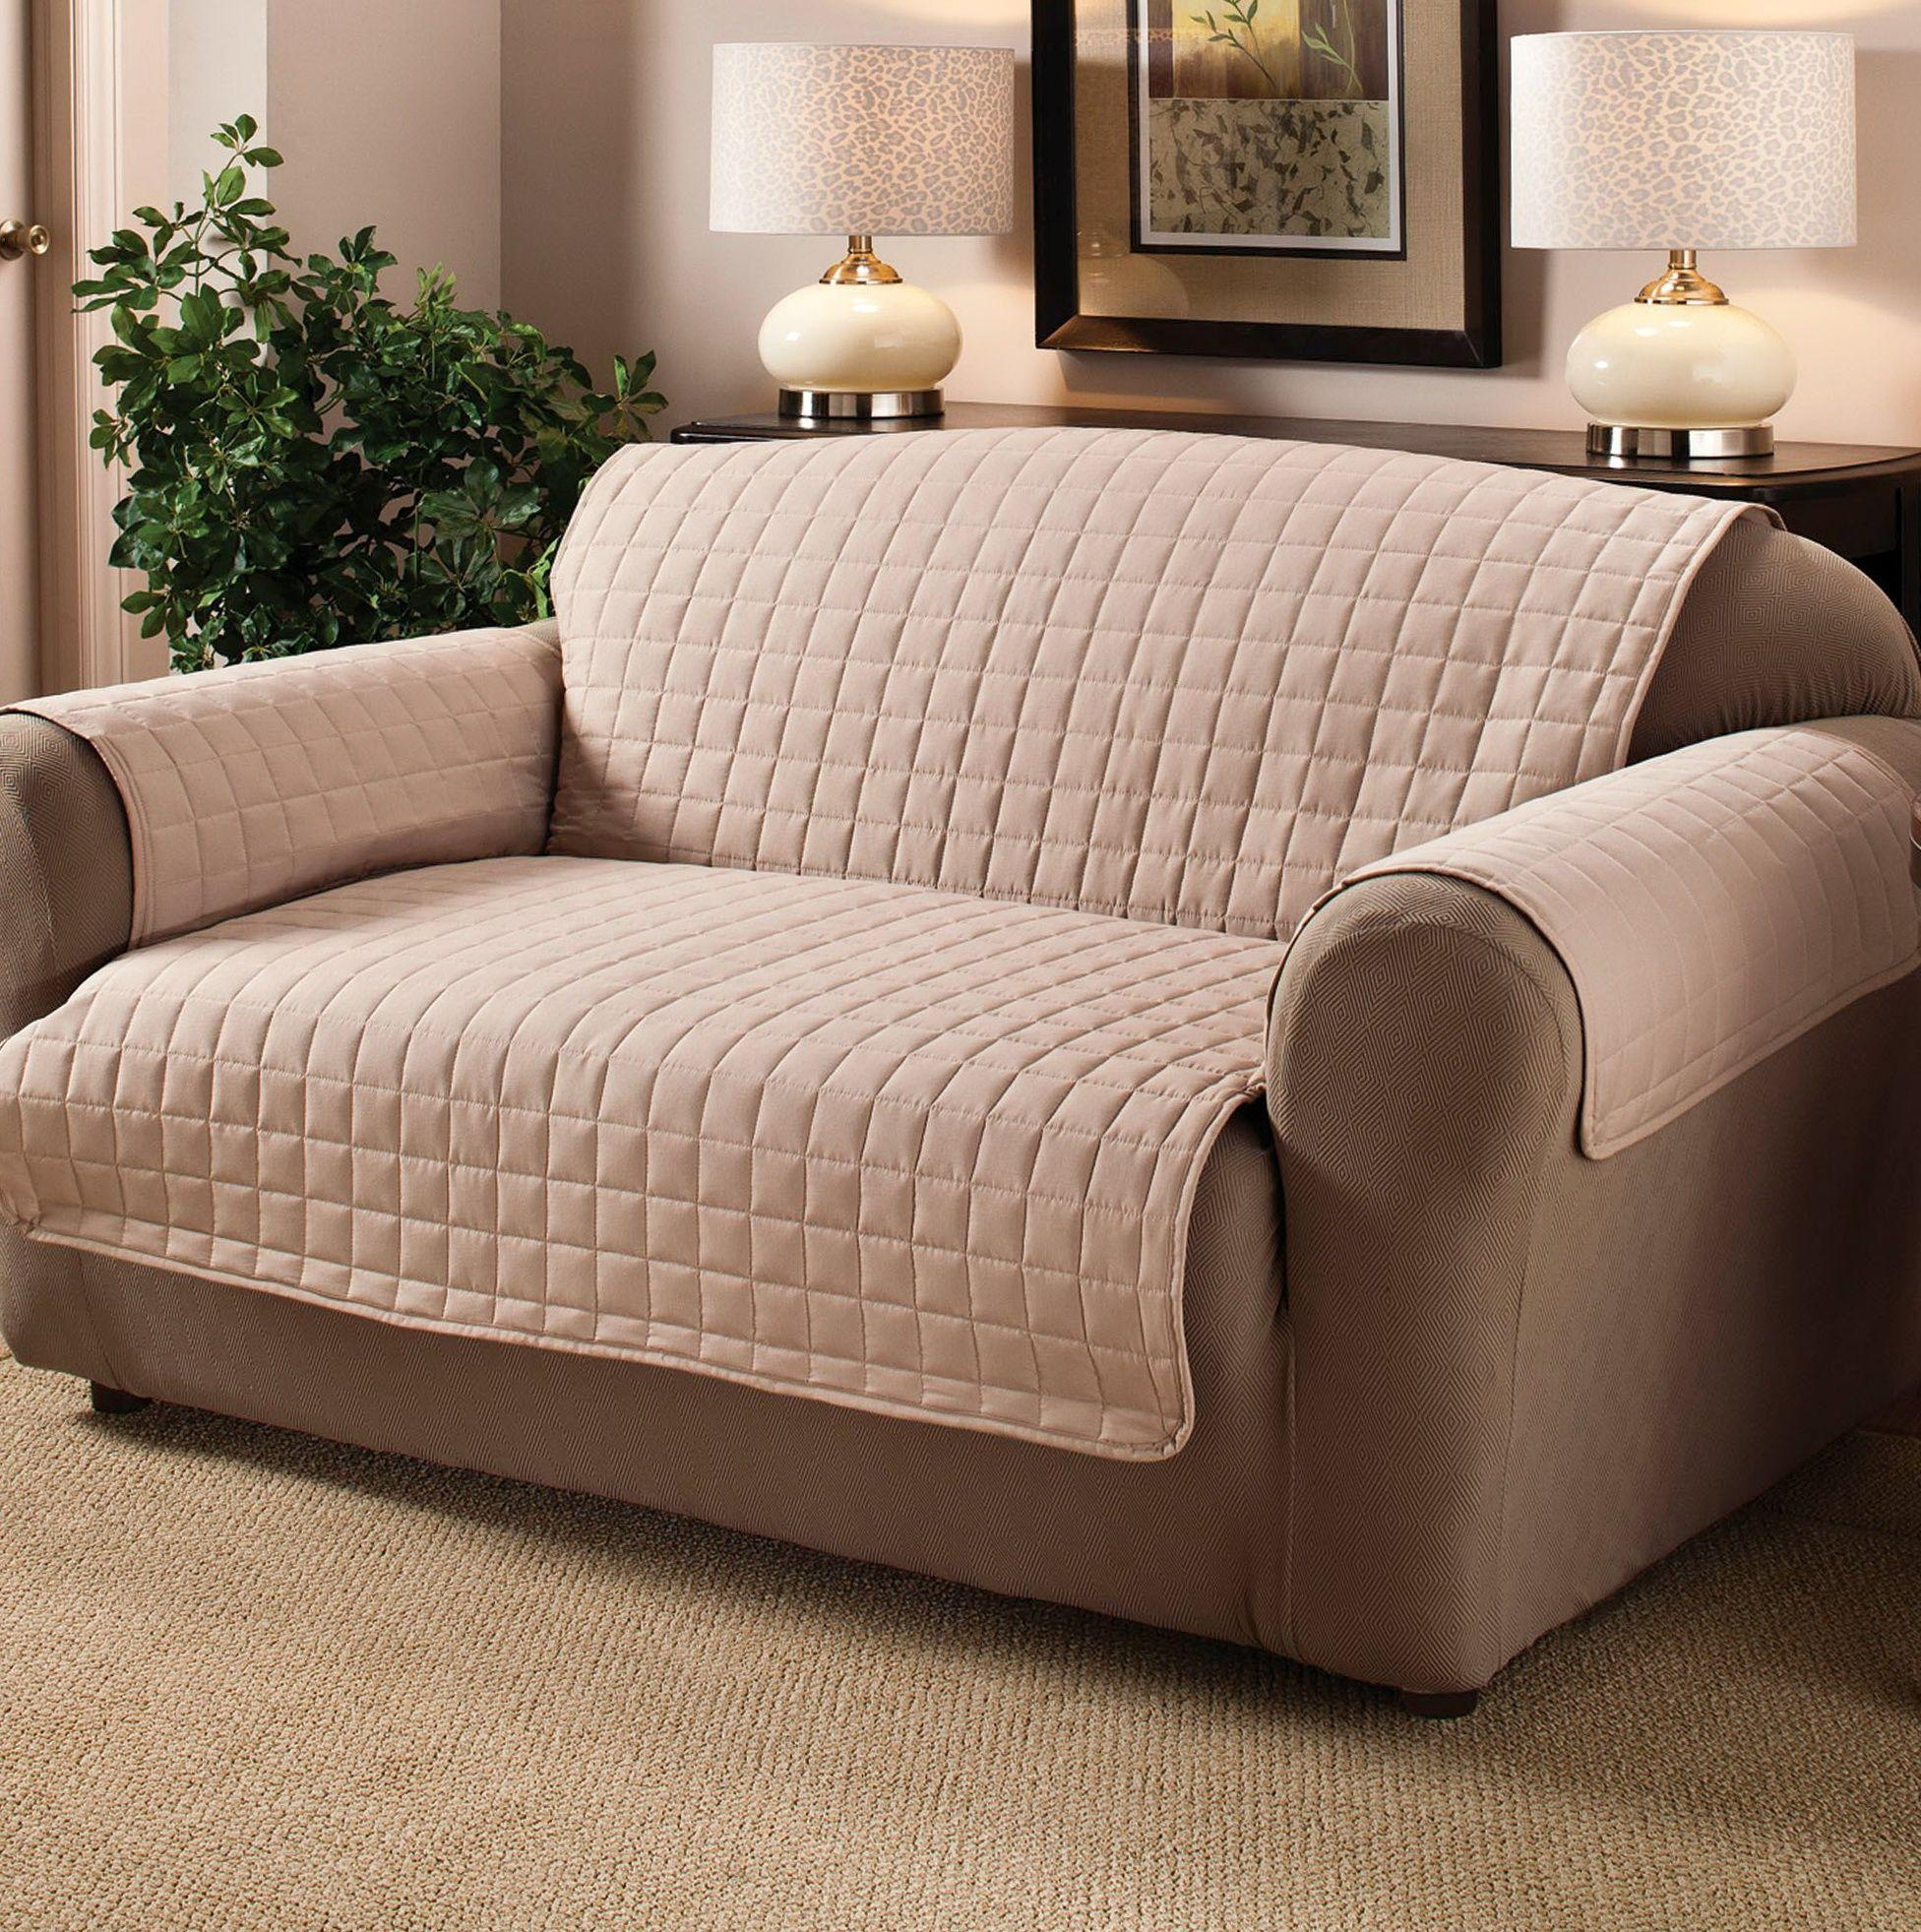 shaped slipcover slipcovers cotton of full for red couch cheap sofa white sofas sectional size slipcovered l